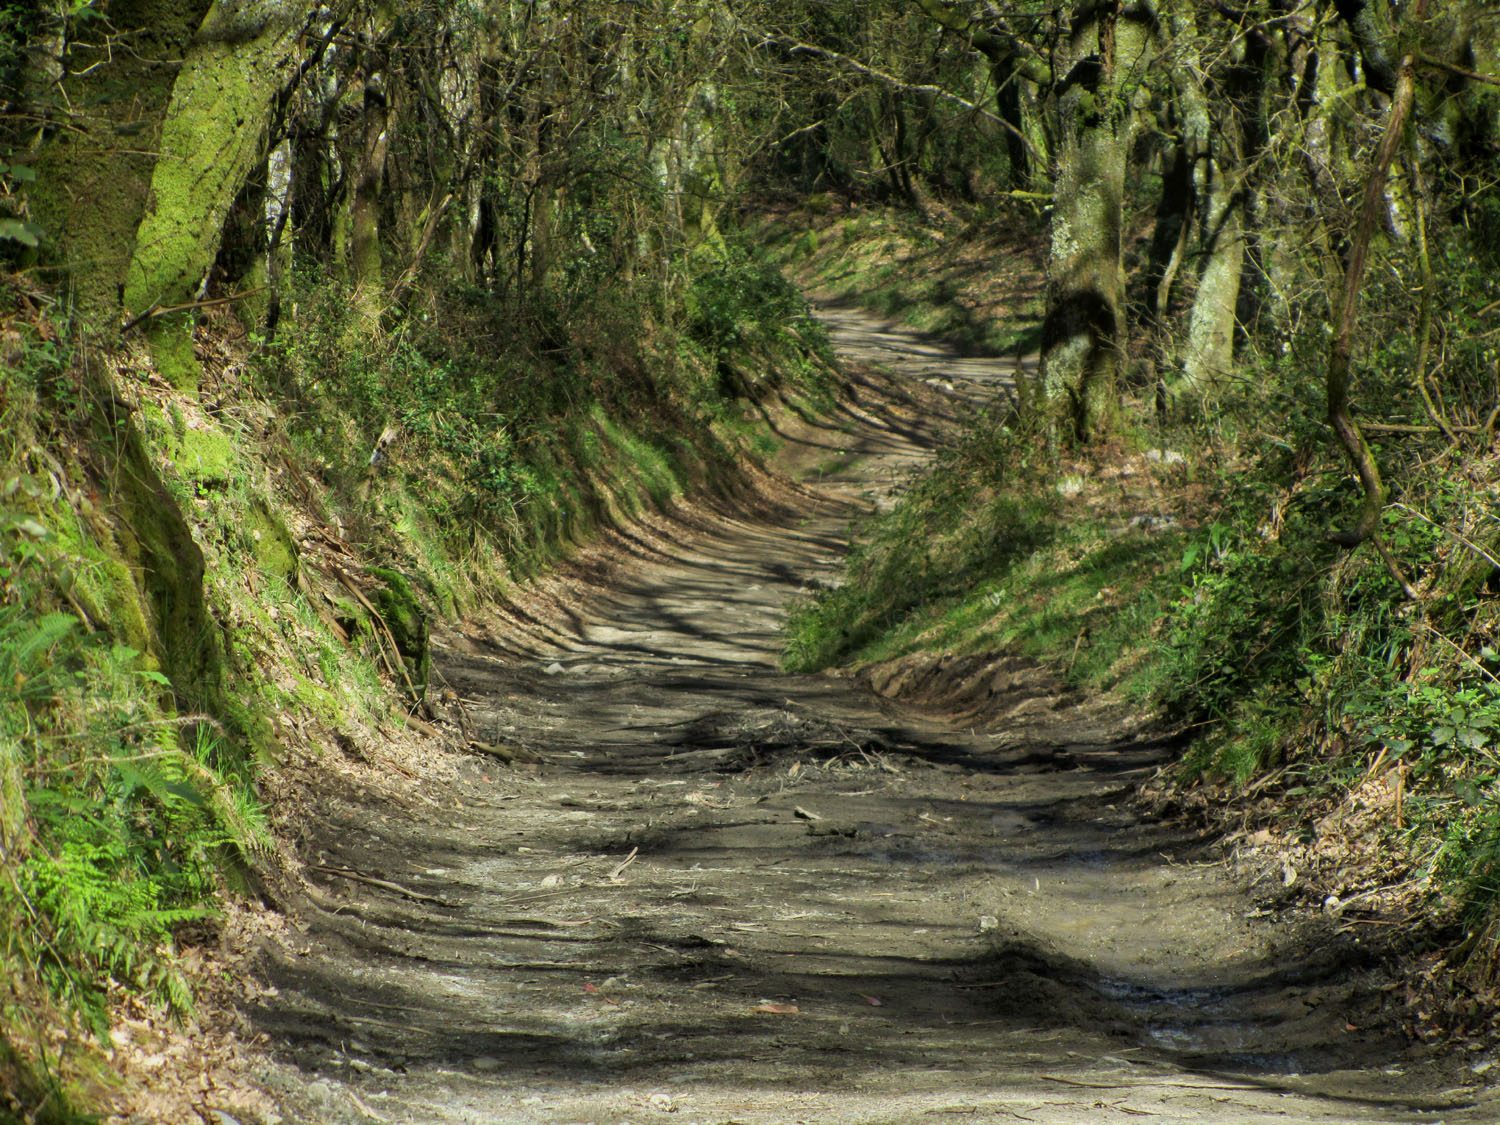 Camino-De-Santiago-Sights-And-Scenery-Forest